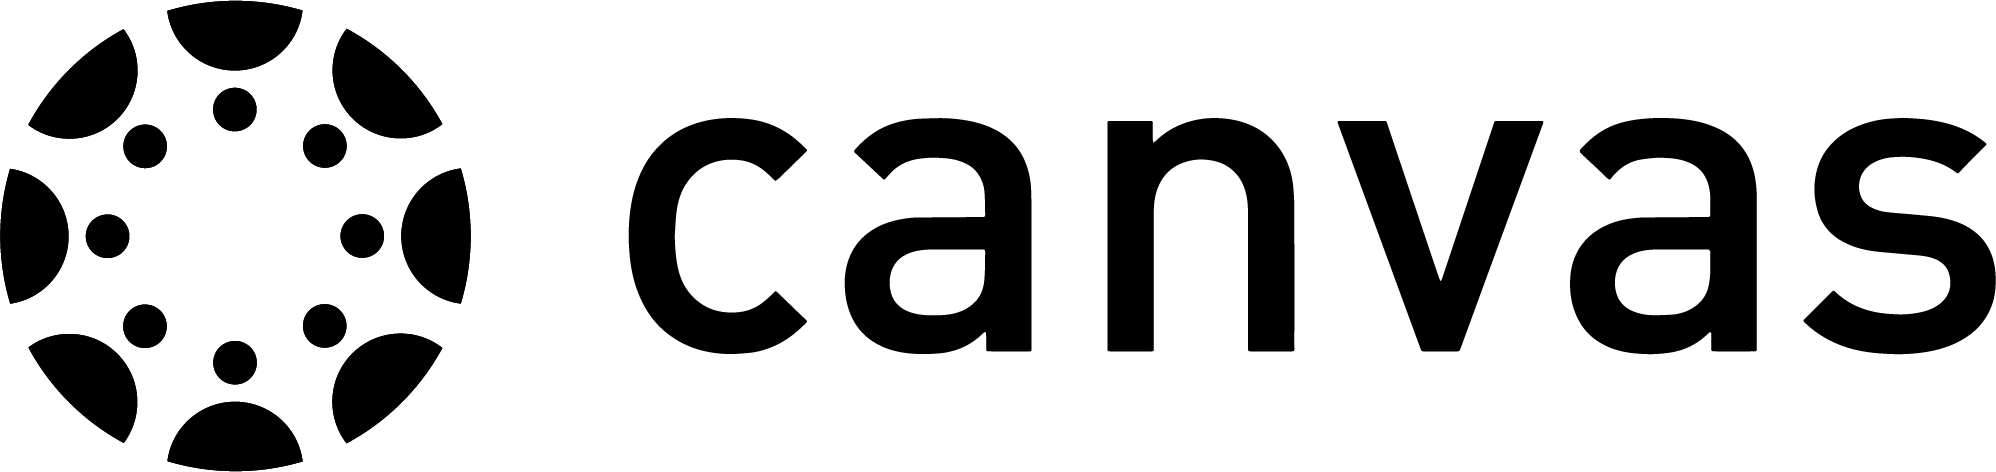 A black Canvas logo that features a circle on the left side consisting of semi-circles and dots in the center ring with the word Canvas in lowercase to the right of the circle.